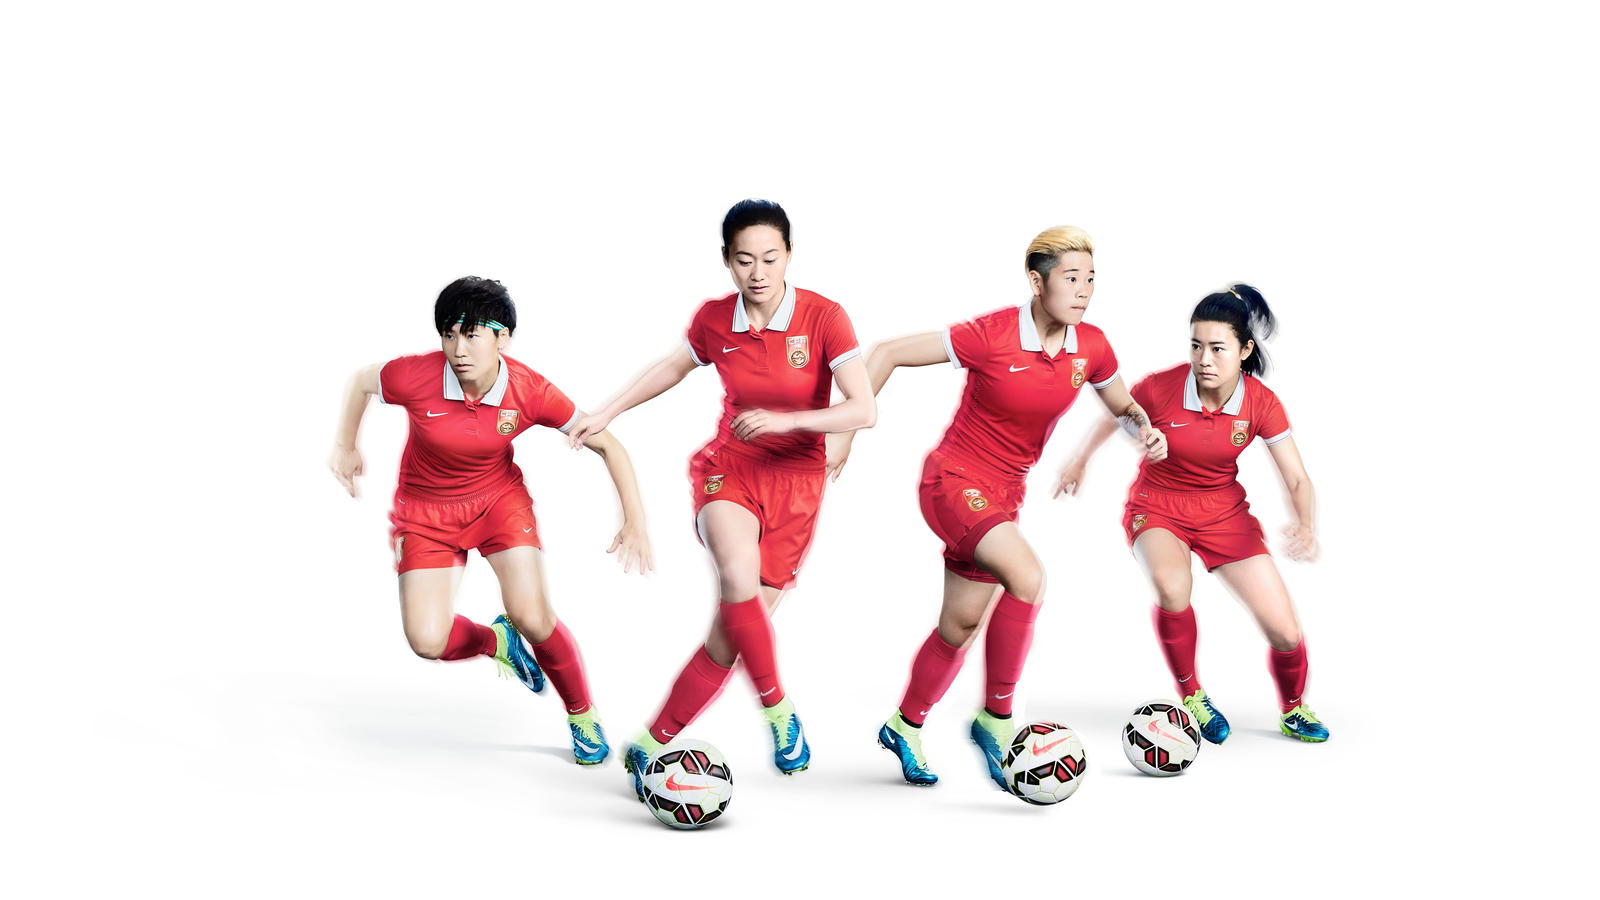 Nike Outfits The China National Womens Football Team For